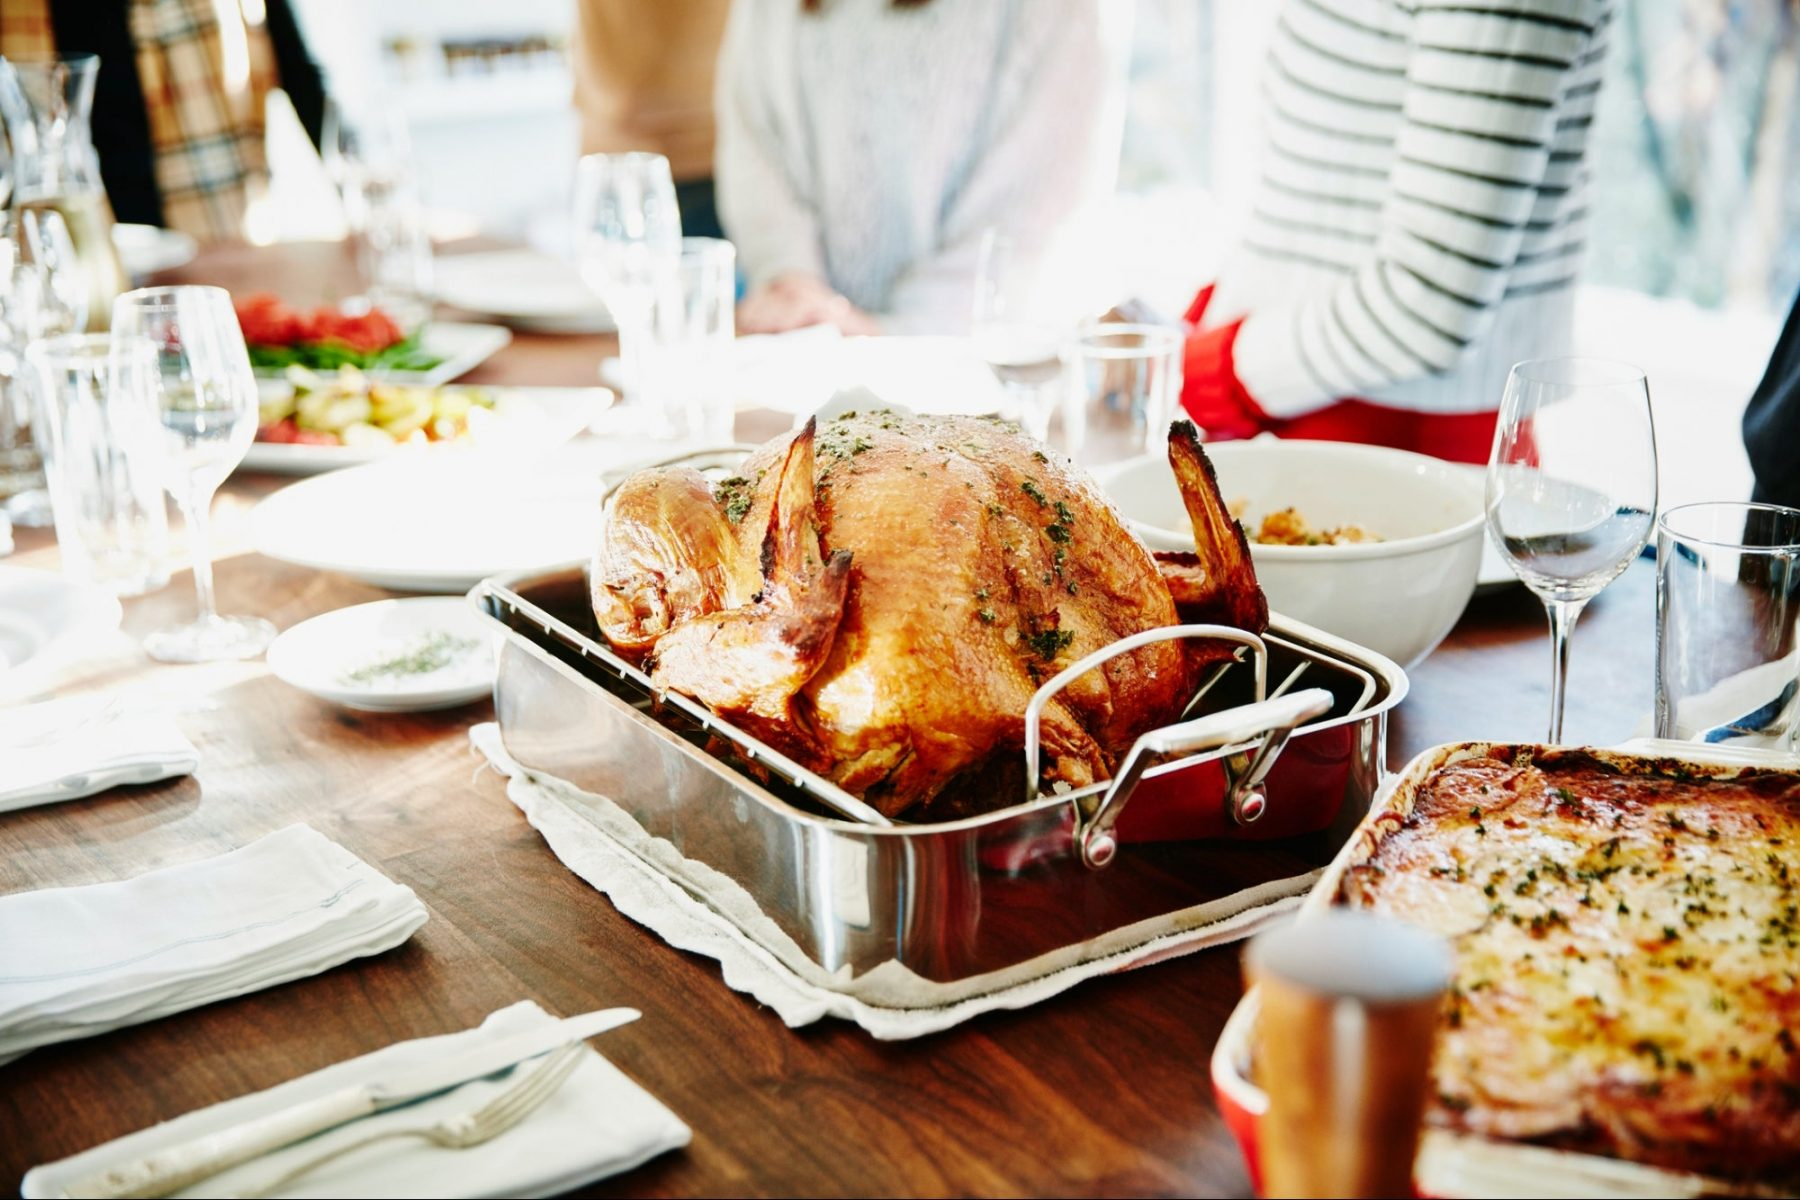 turkeys-could-be-in-short-supply-over-the-holidays-as-producers-warn-they're-struggling-to-keep-up-with-demand,-a-report-says